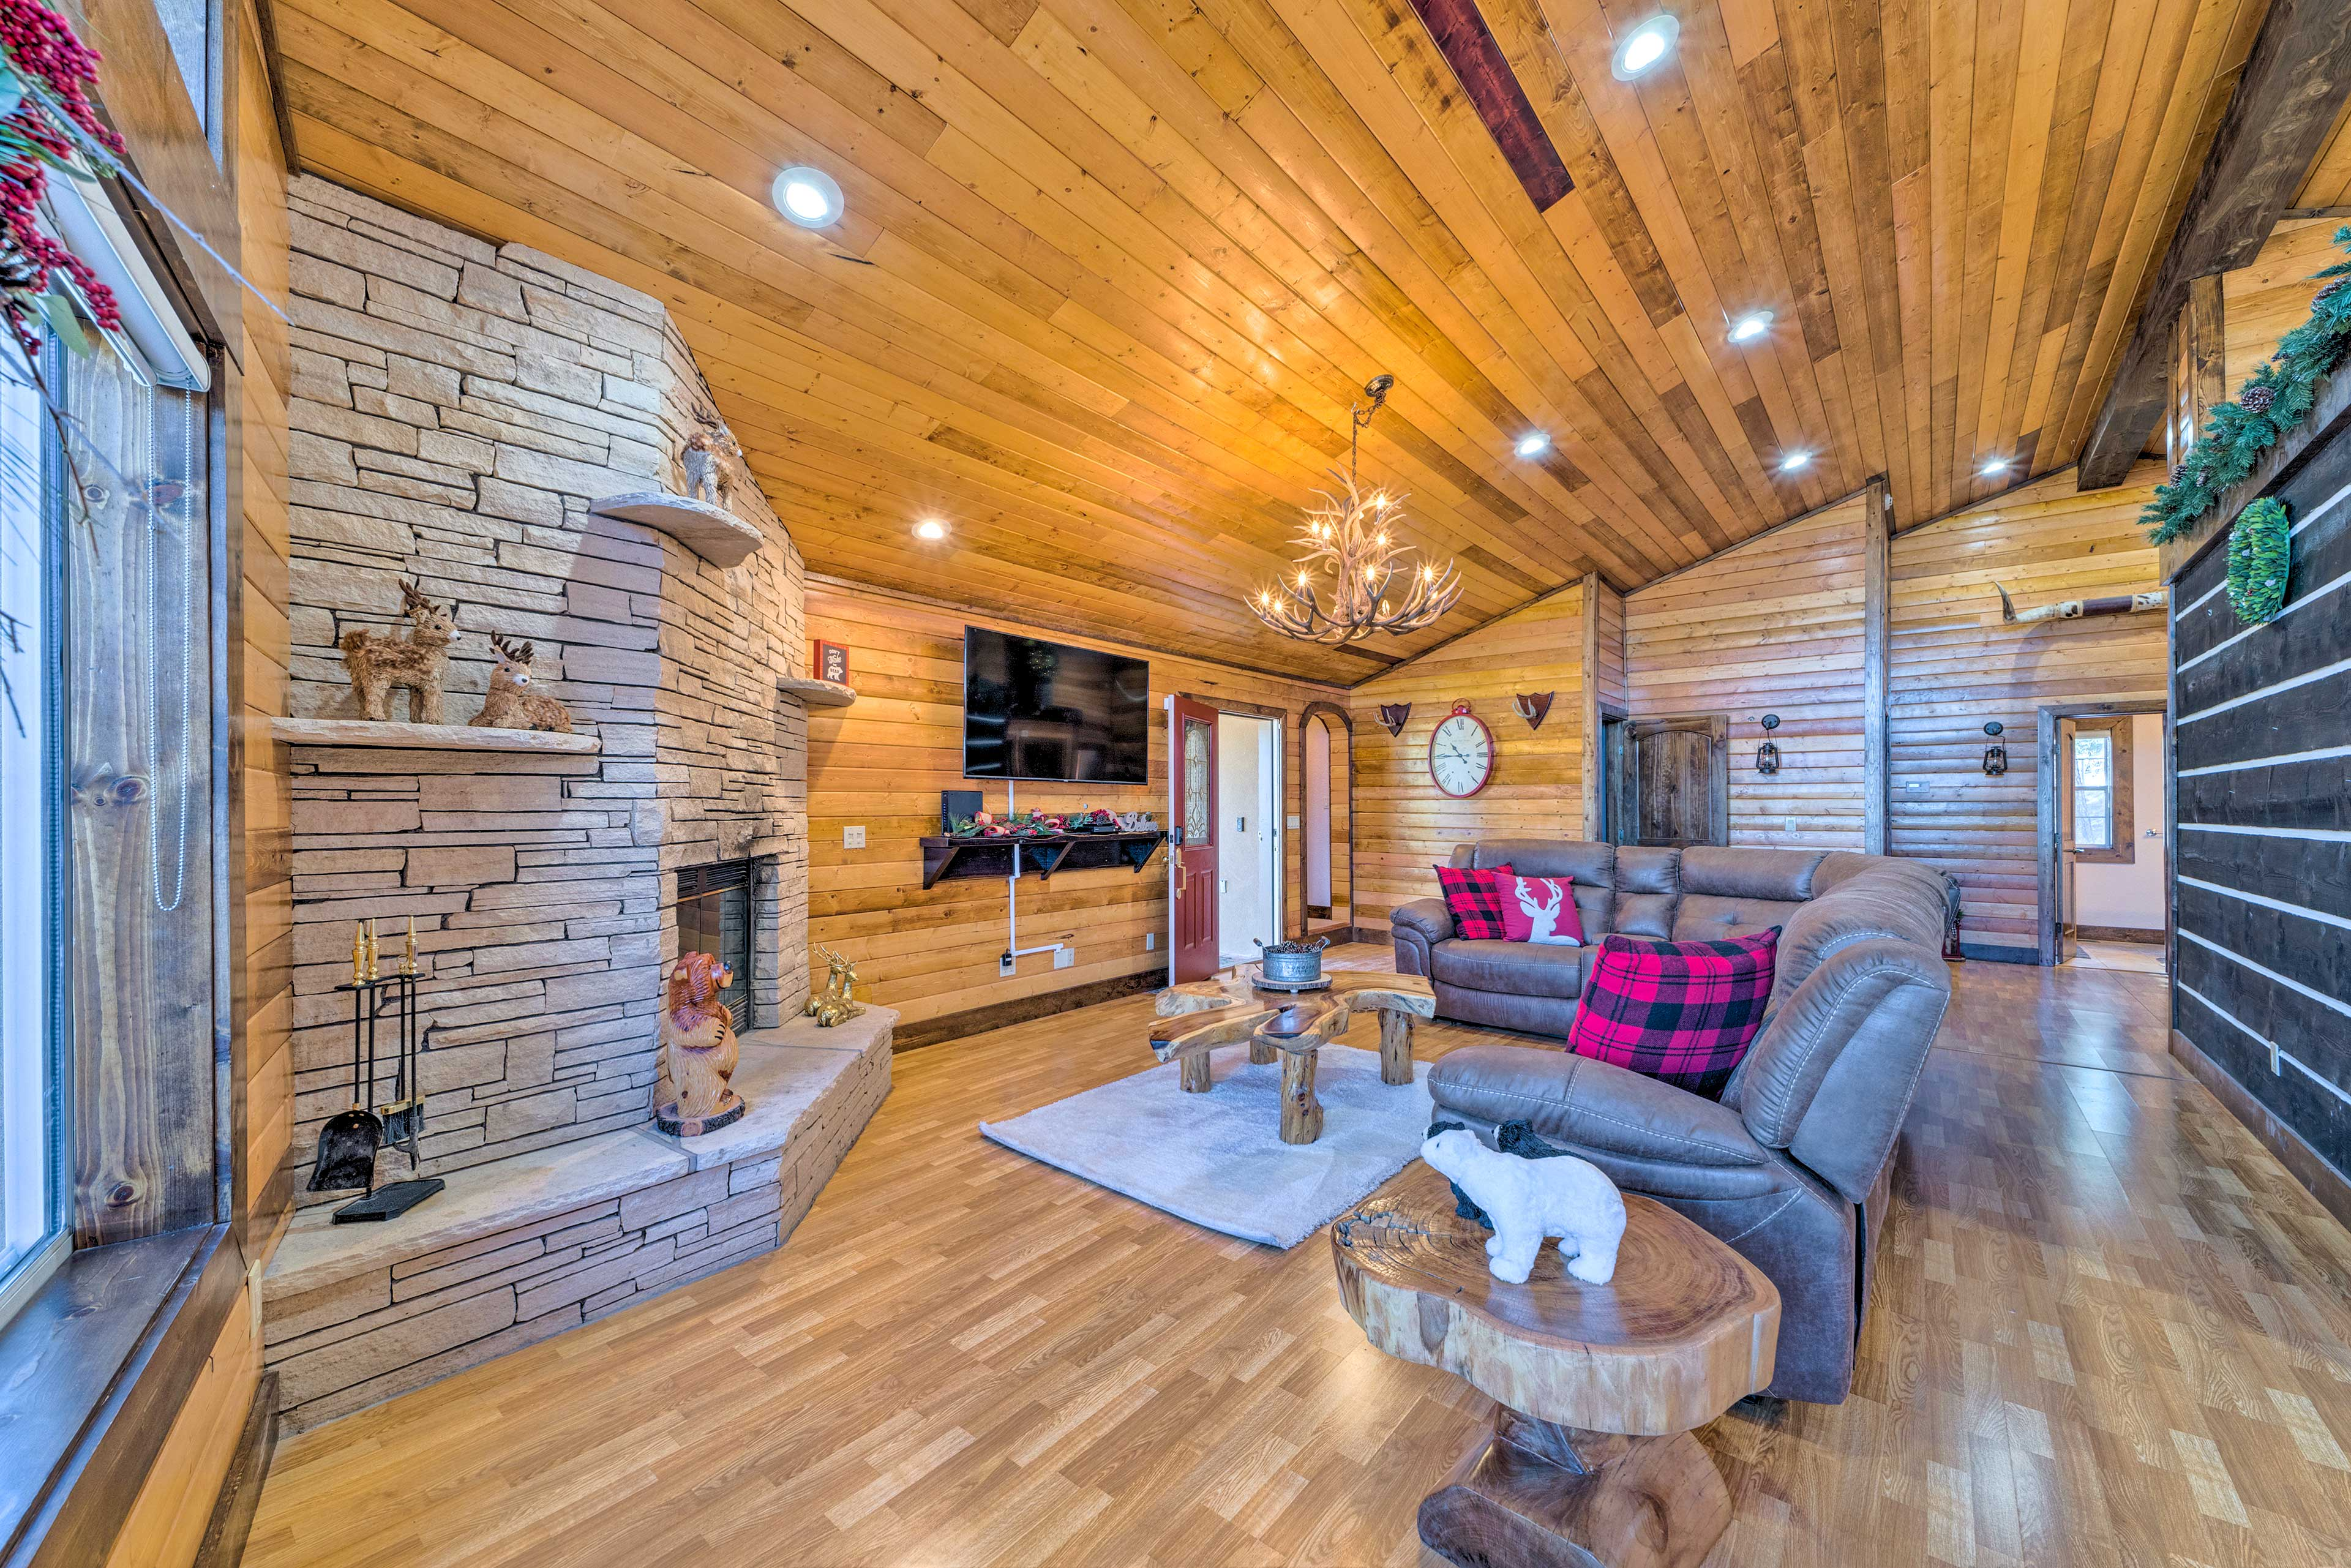 The bright and spacious interior features a large Smart TV and fireplace!